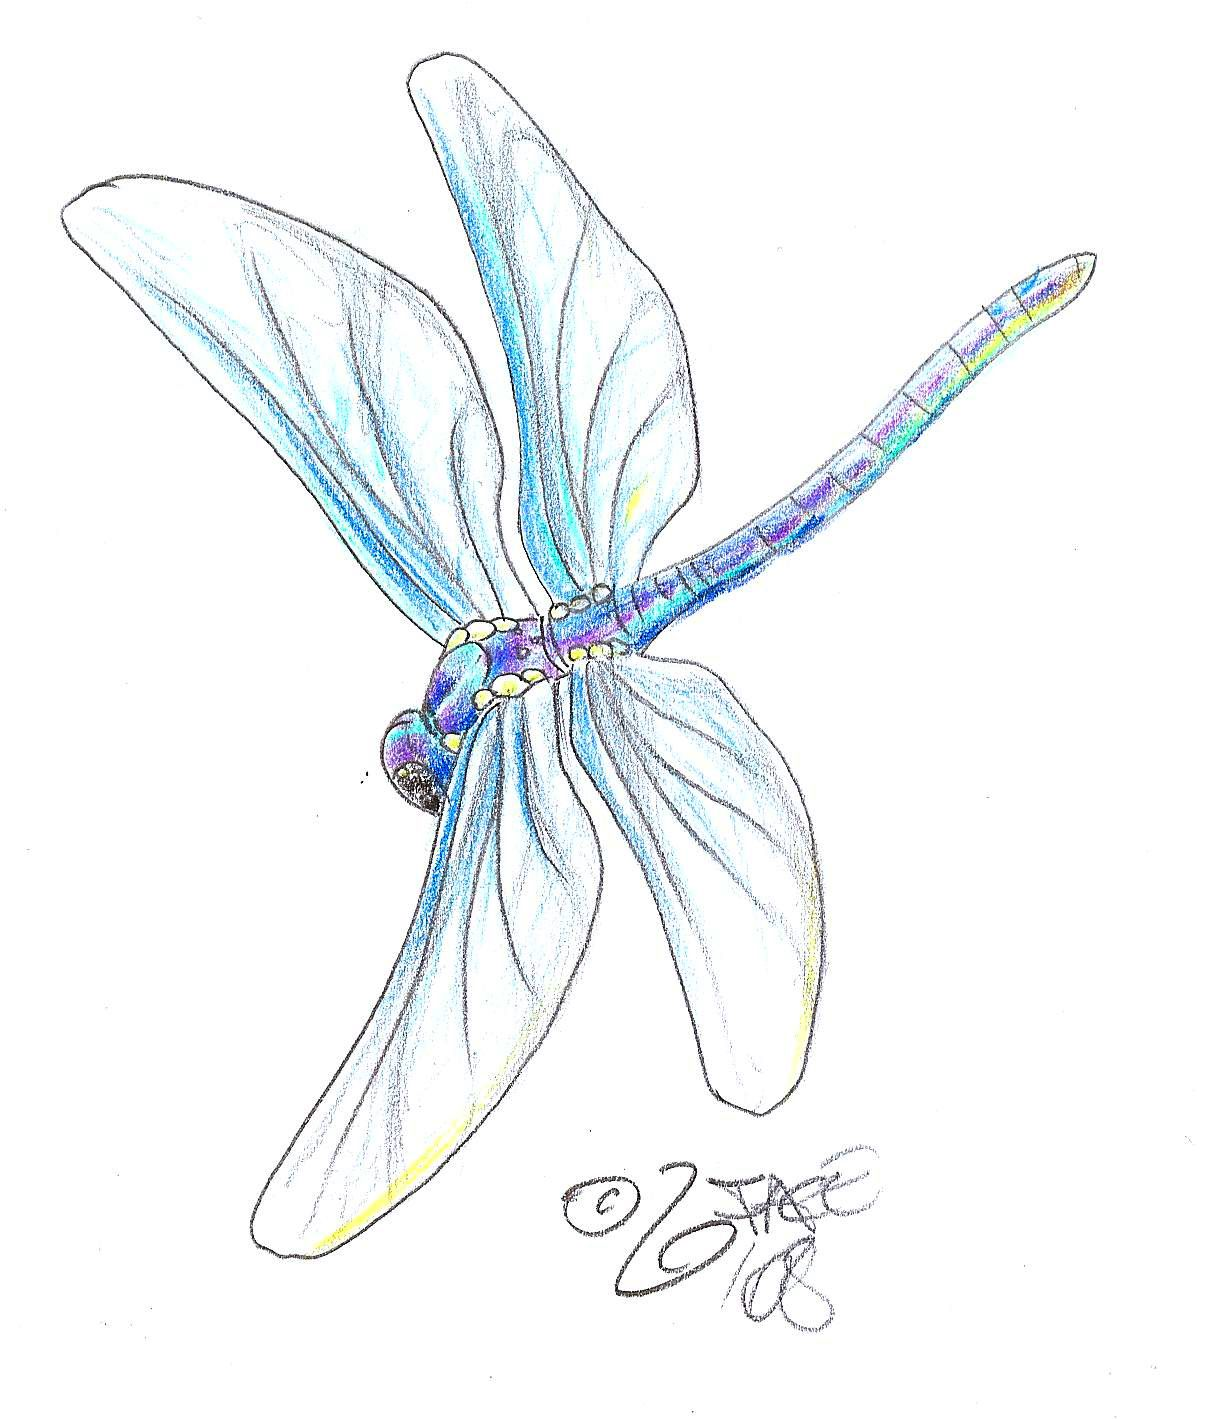 Dragonfly Tattoo The Most Popular Tattoo Design For Women